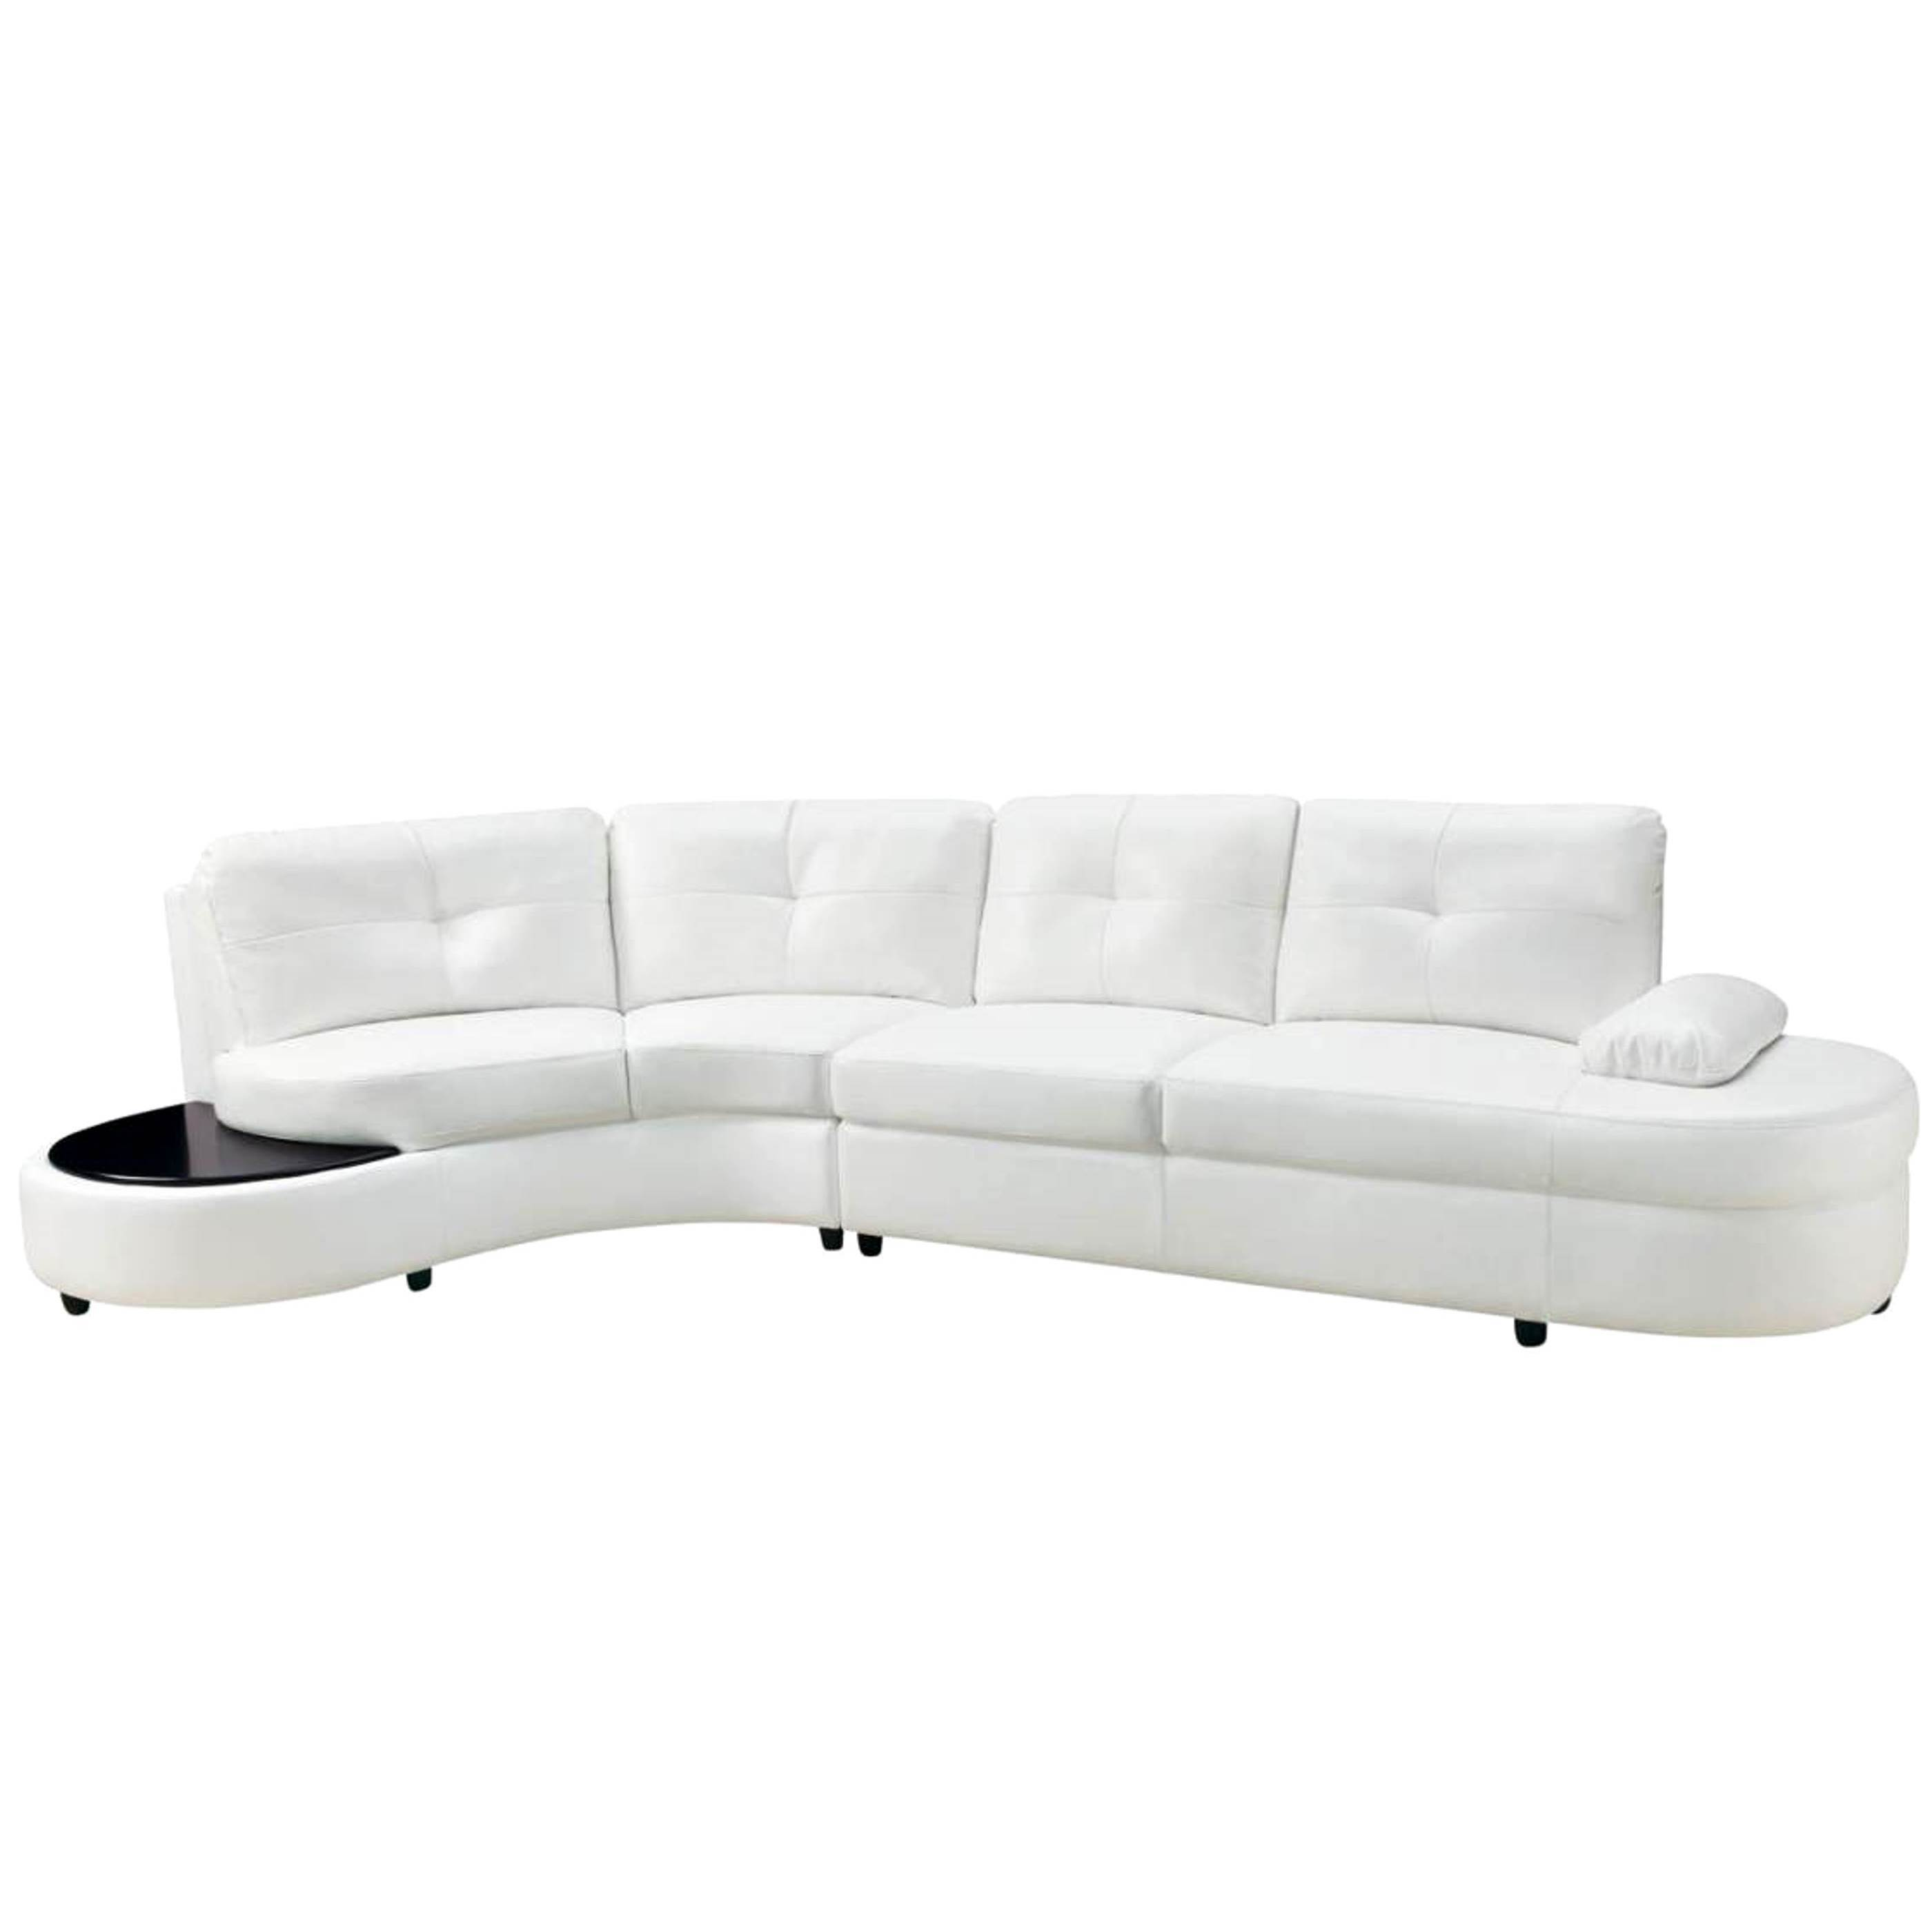 Shop Modern Style Curved Sectional Sofa With Built In Wooden Top Ottoman    Free Shipping Today   Overstock.com   16286090